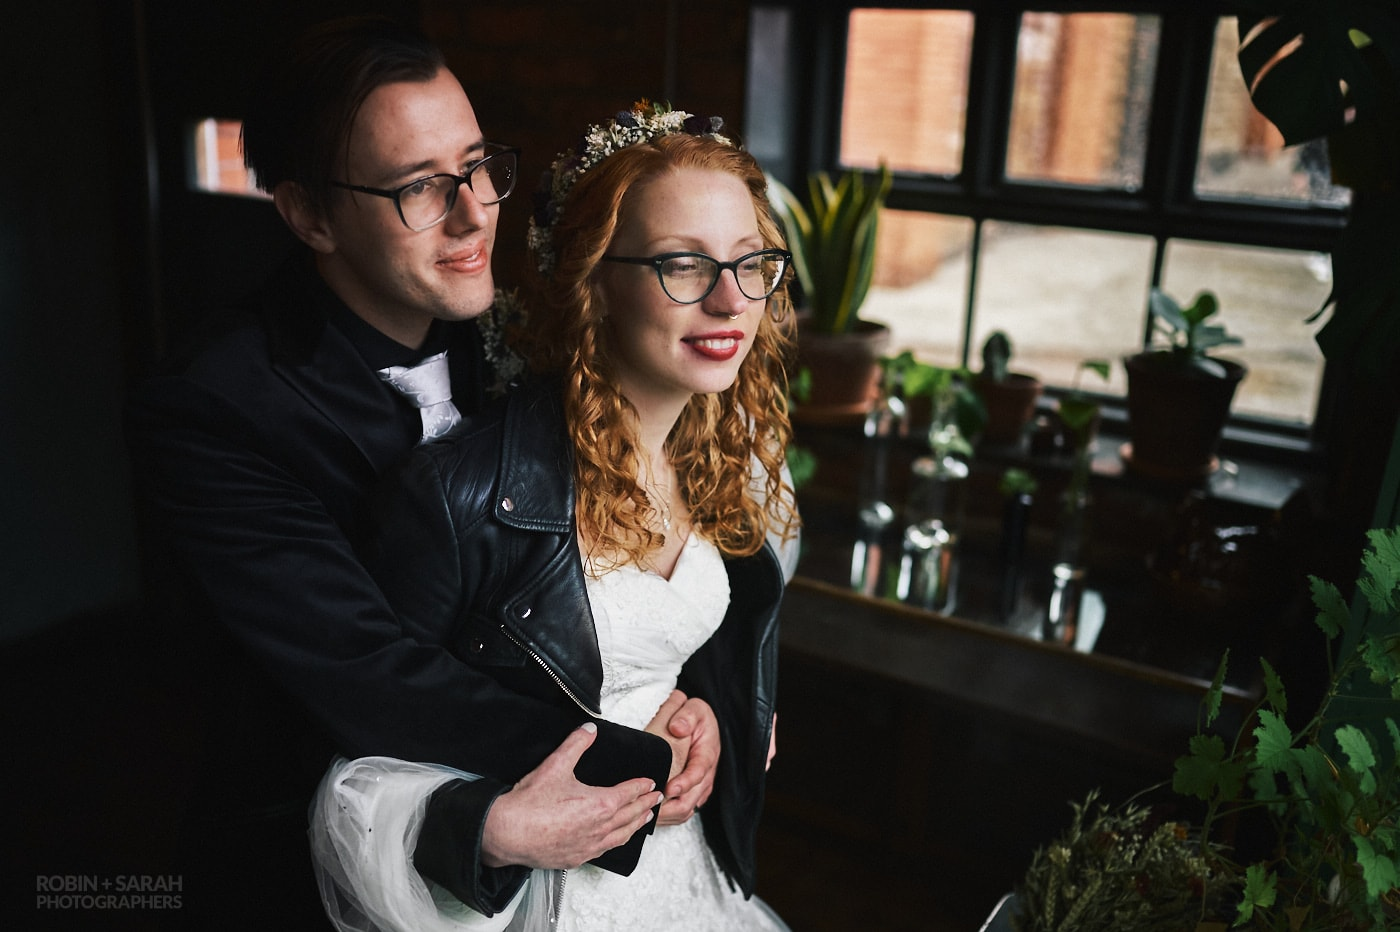 Bride and groom enjoying a moment together in The Chimney House wedding venue in Sheffield